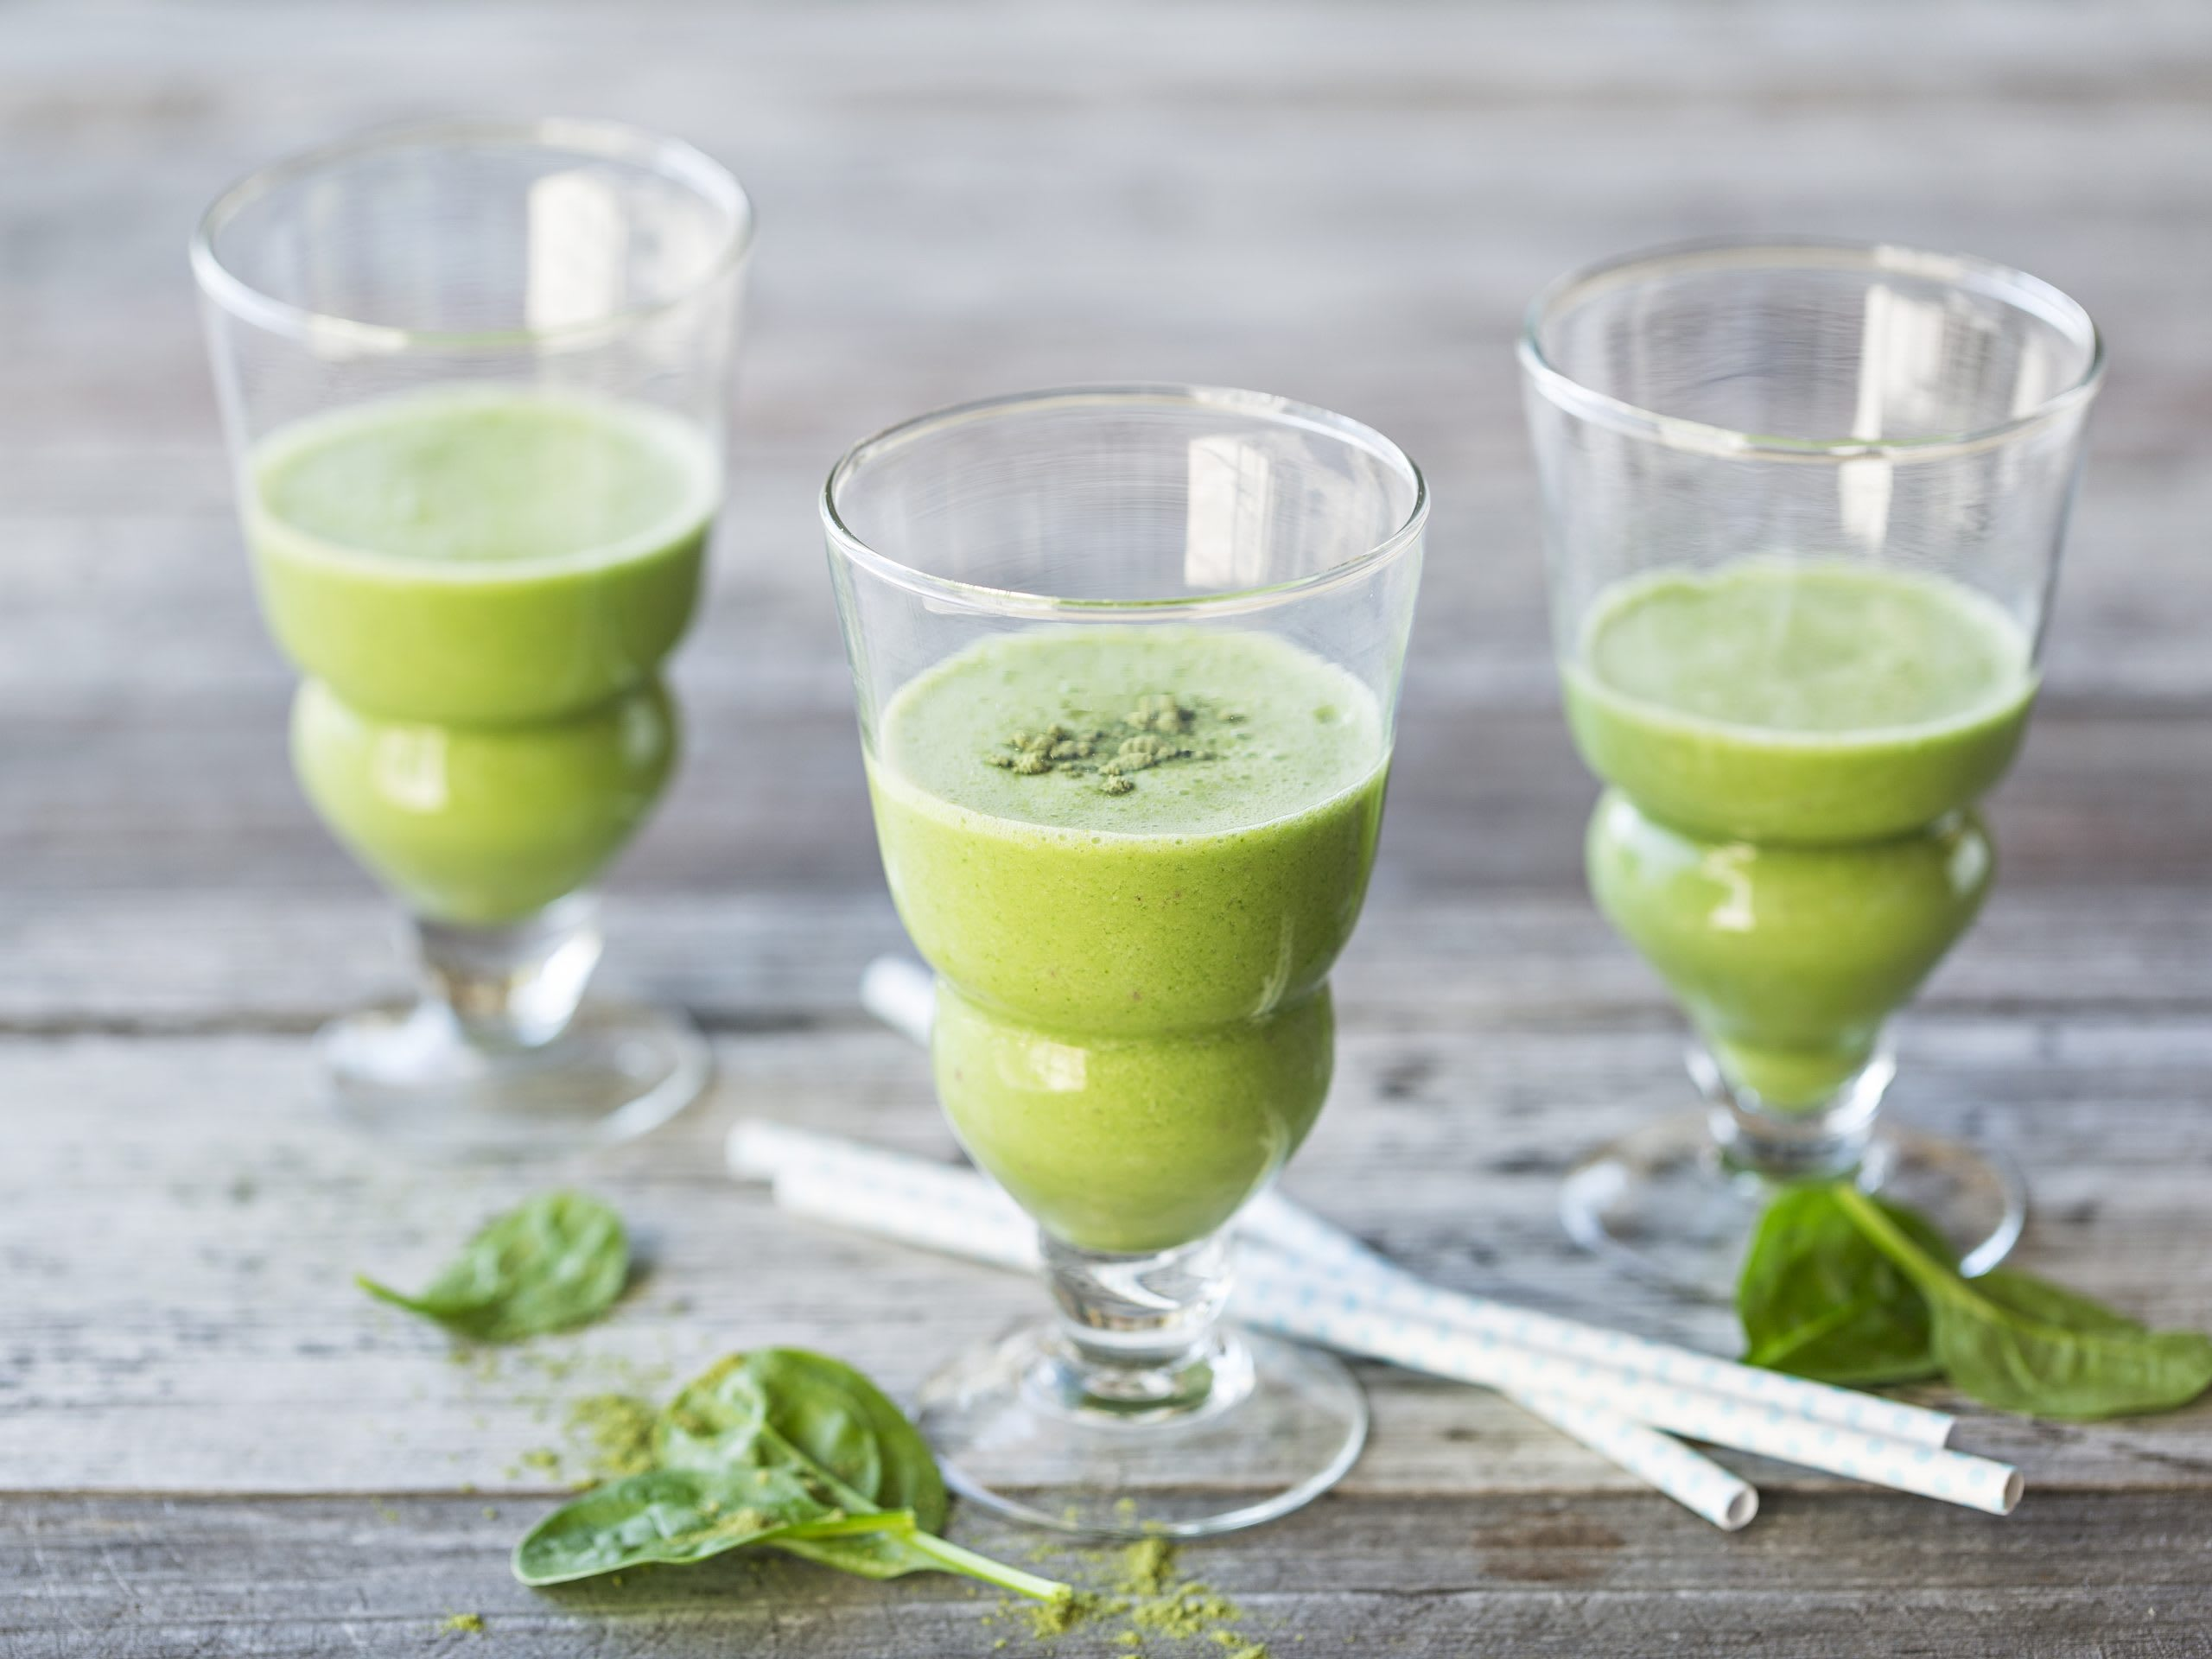 Green Smoothie (Spinat-Apfel-Hagebutte)